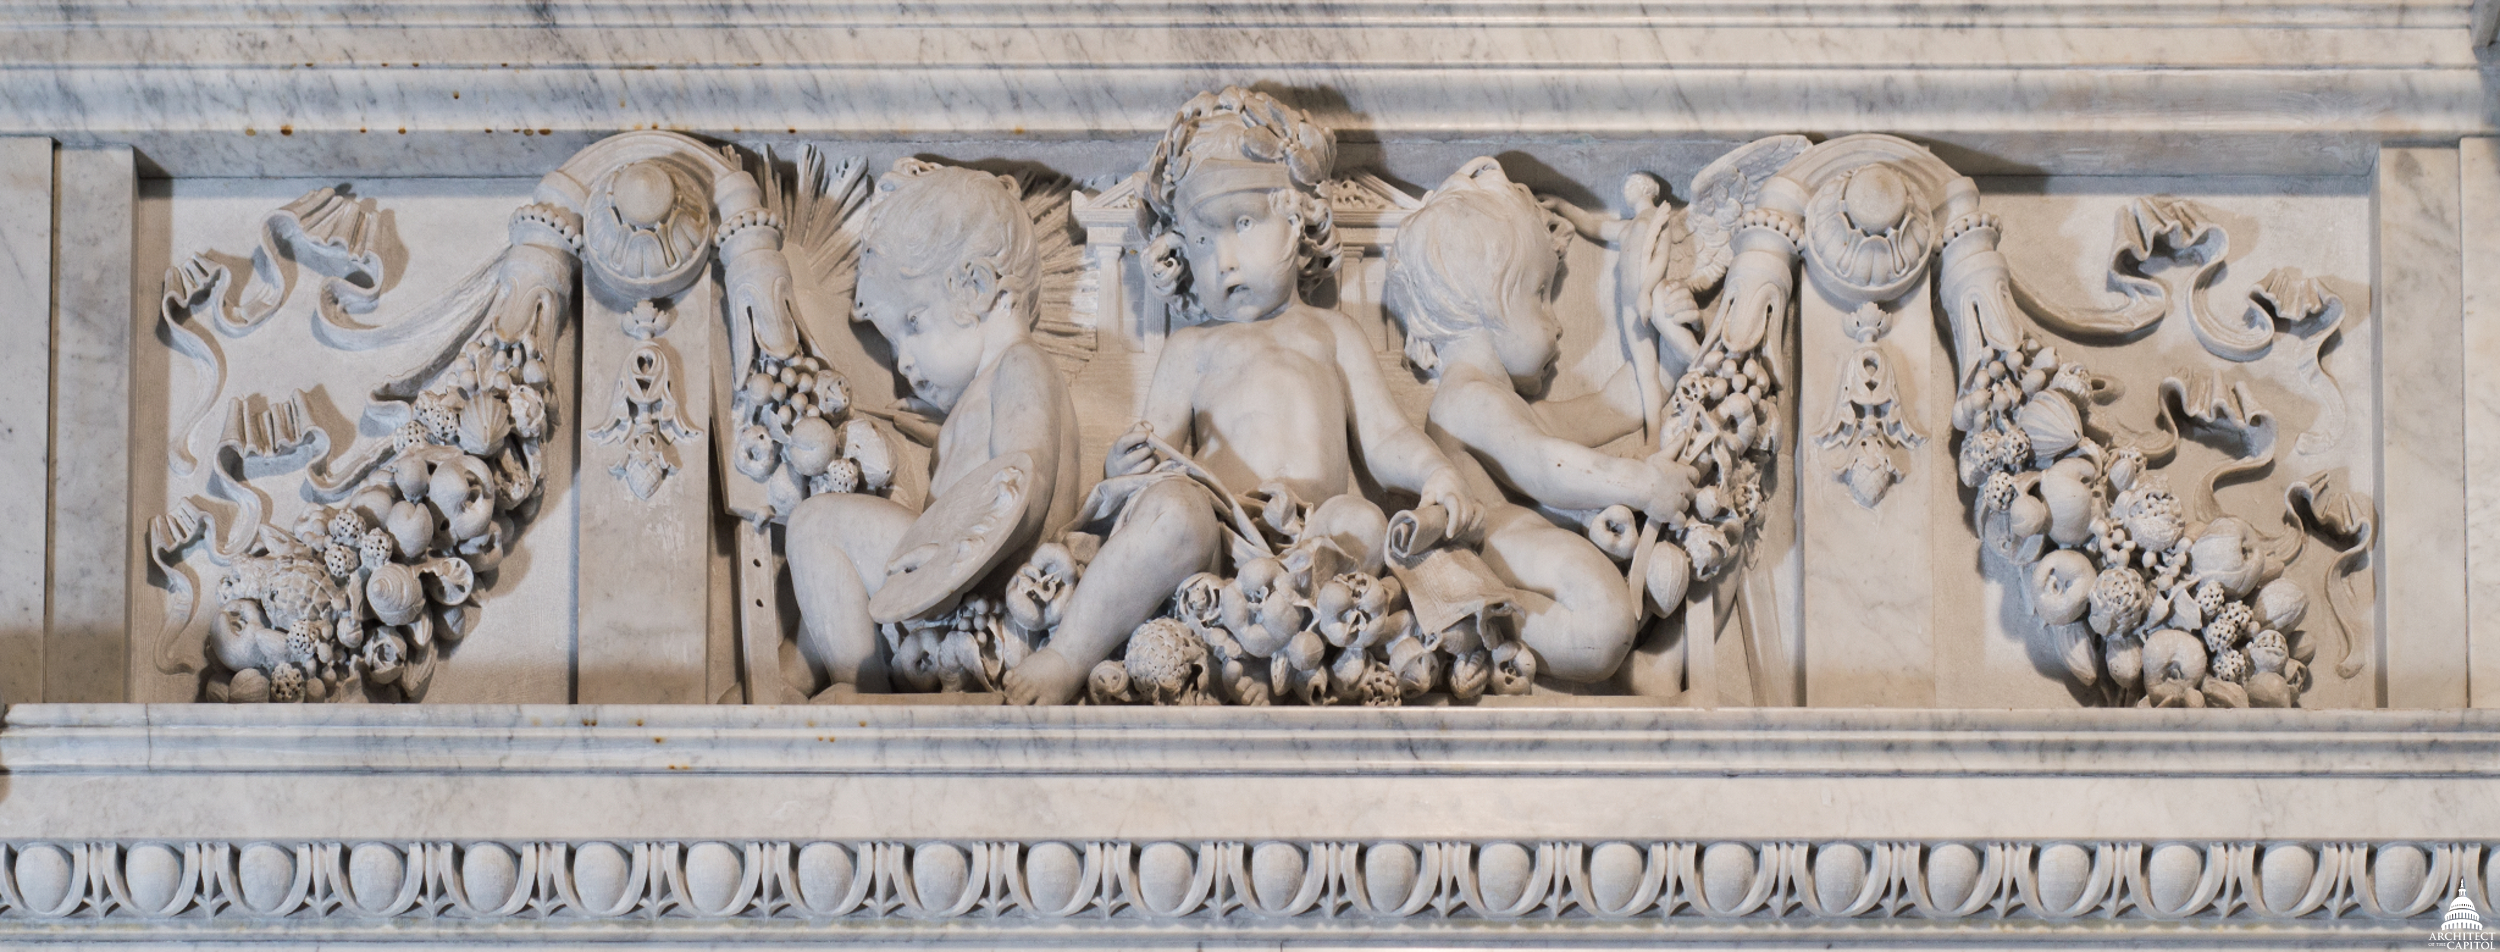 Architecture putto (center) with the Parthenon represented behind it.